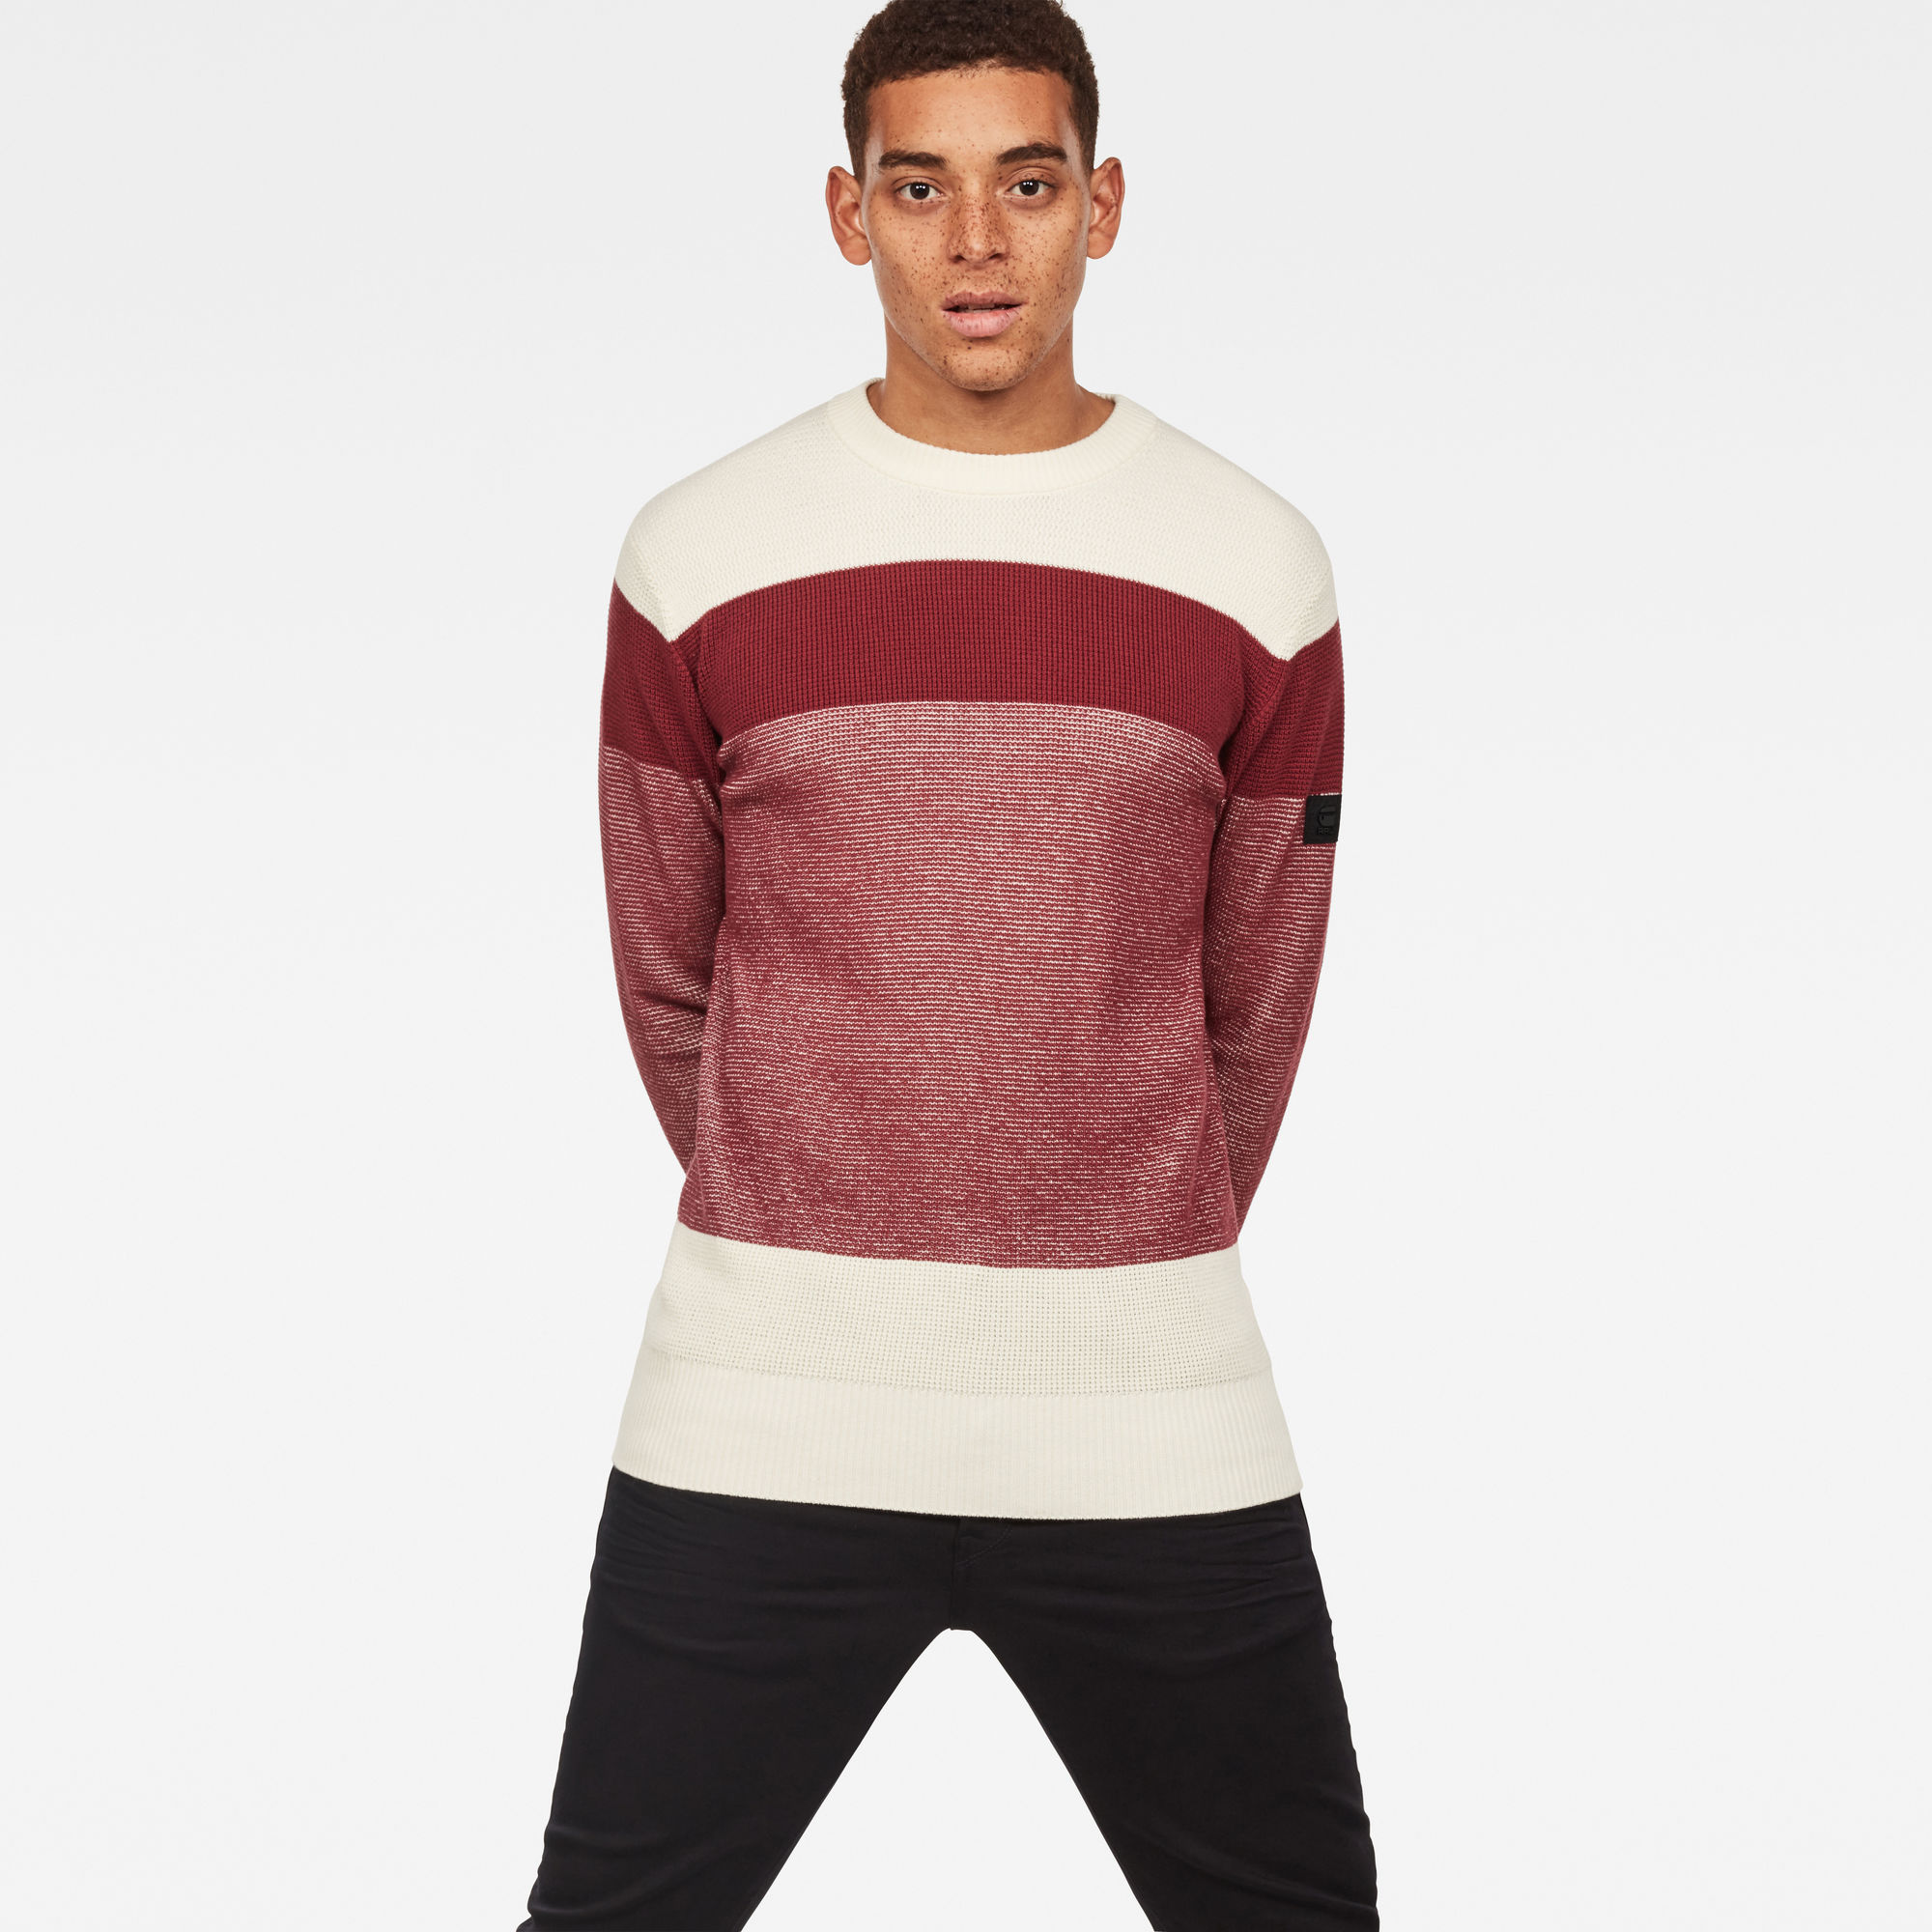 Image of G Star Raw Block Stripe Knit